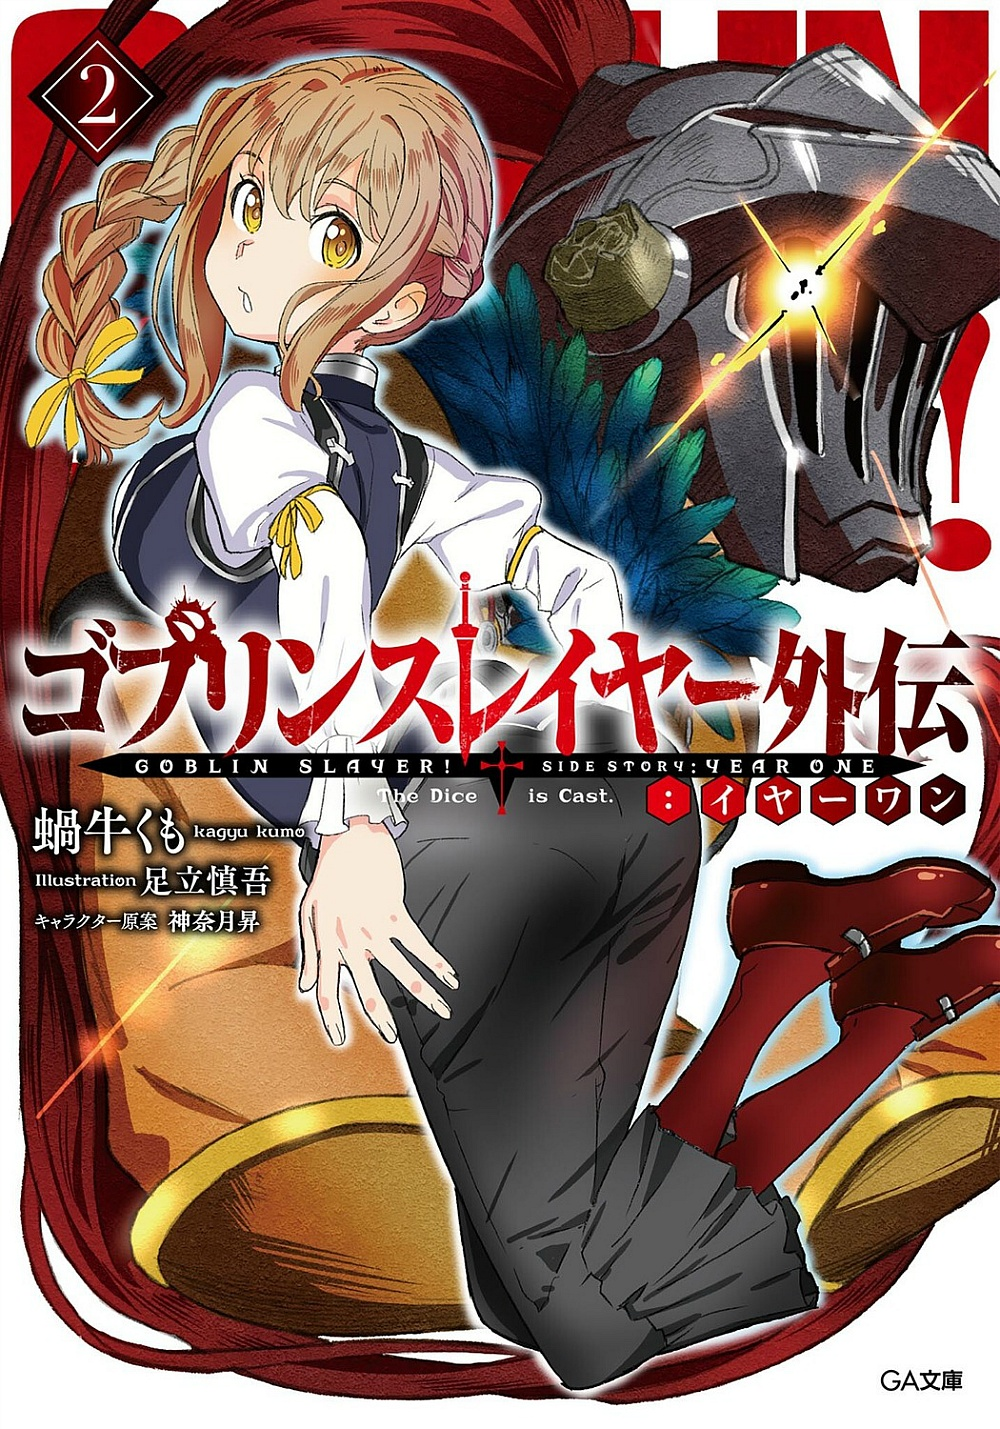 Year One Light Novel Volume 2